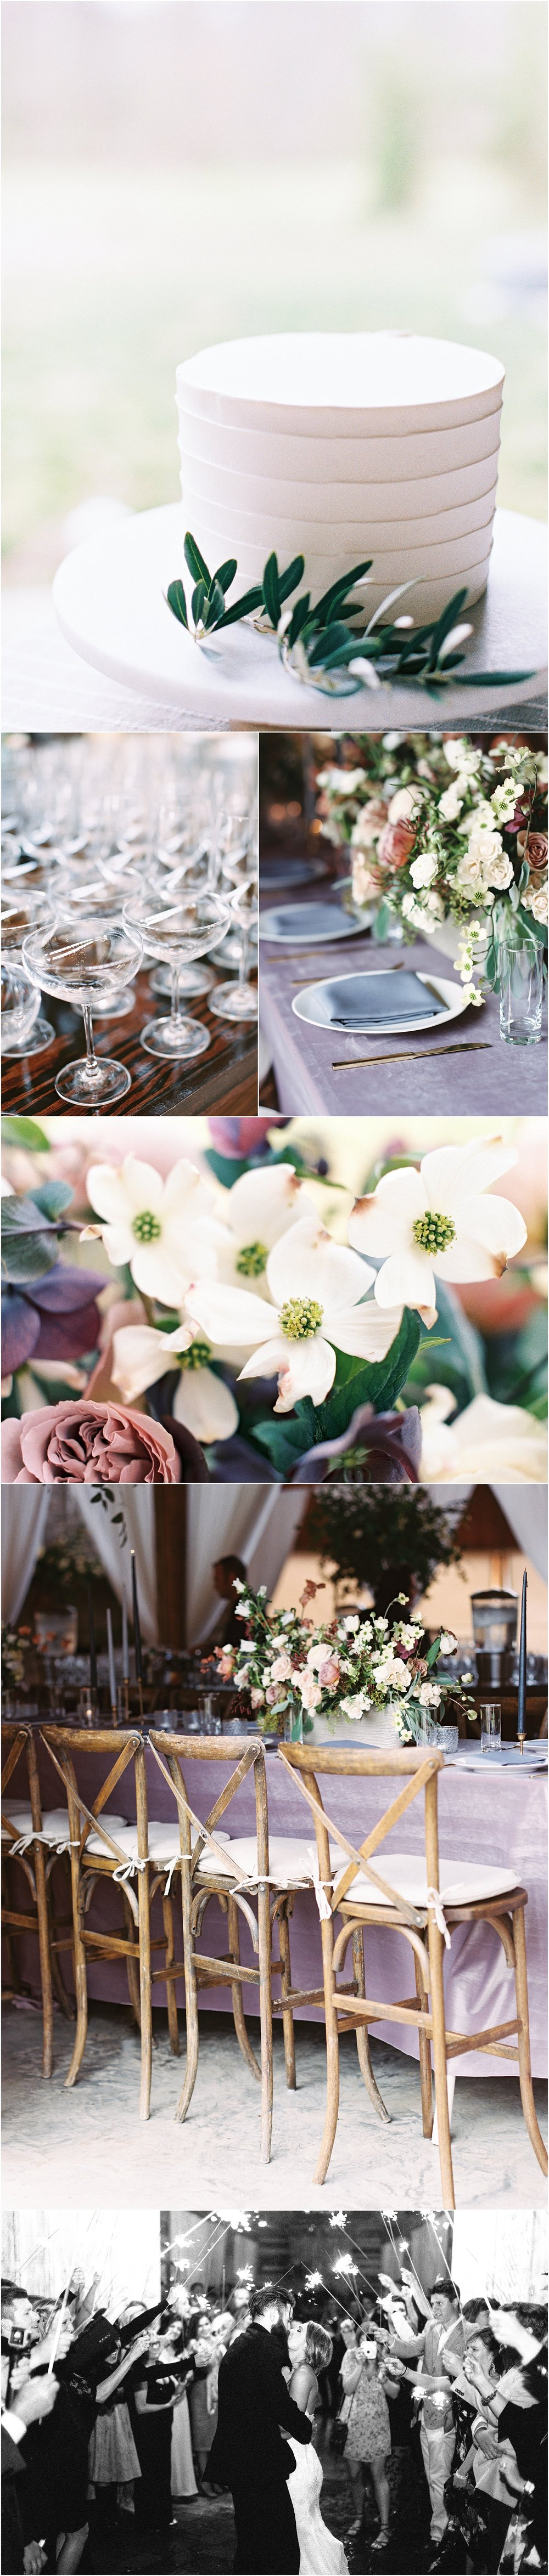 Atlanta wedding photographer film Sarah Ingram